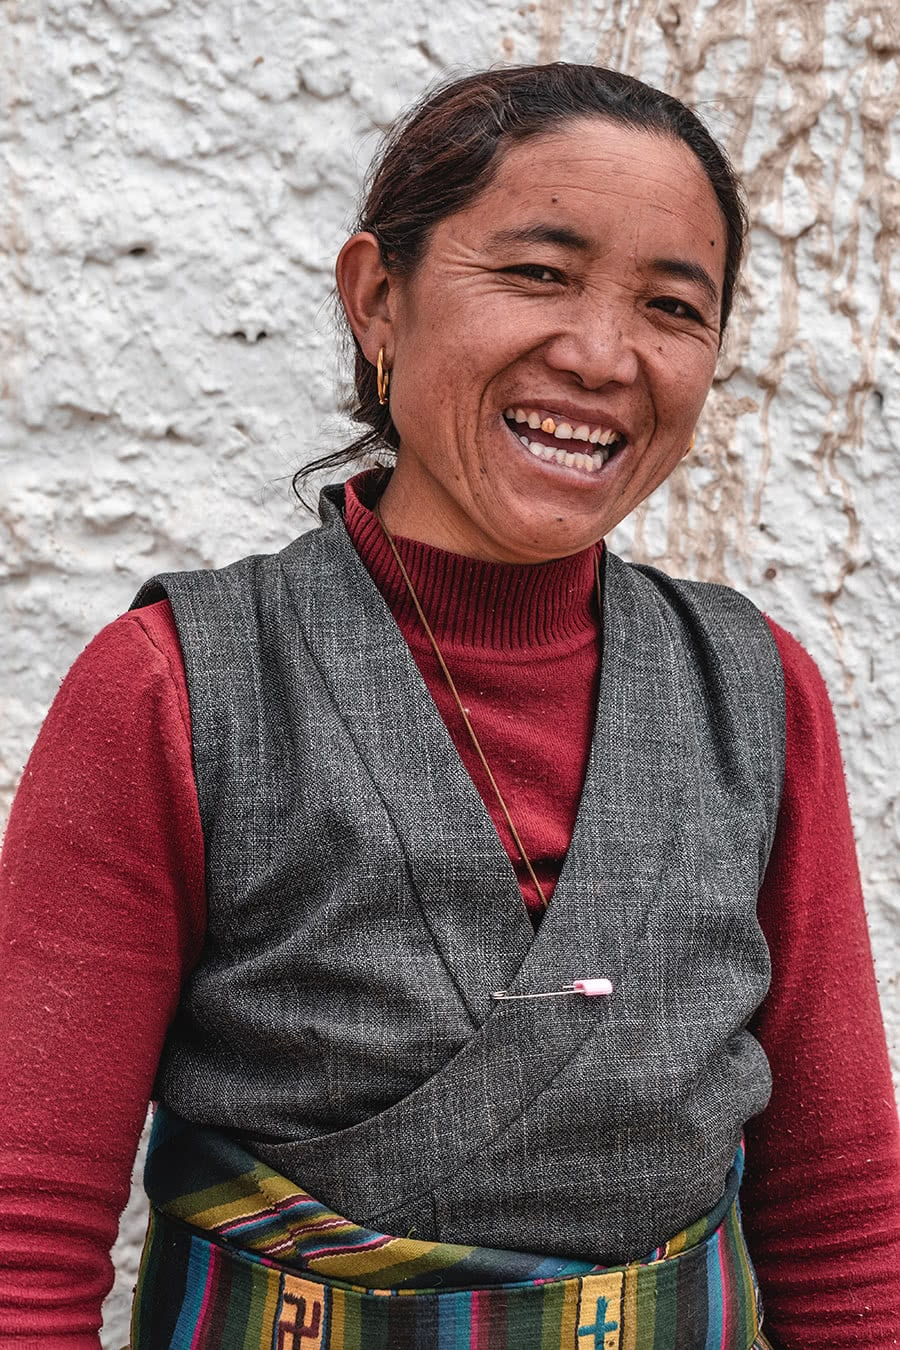 A woman from Upper Mustang, Nepal.